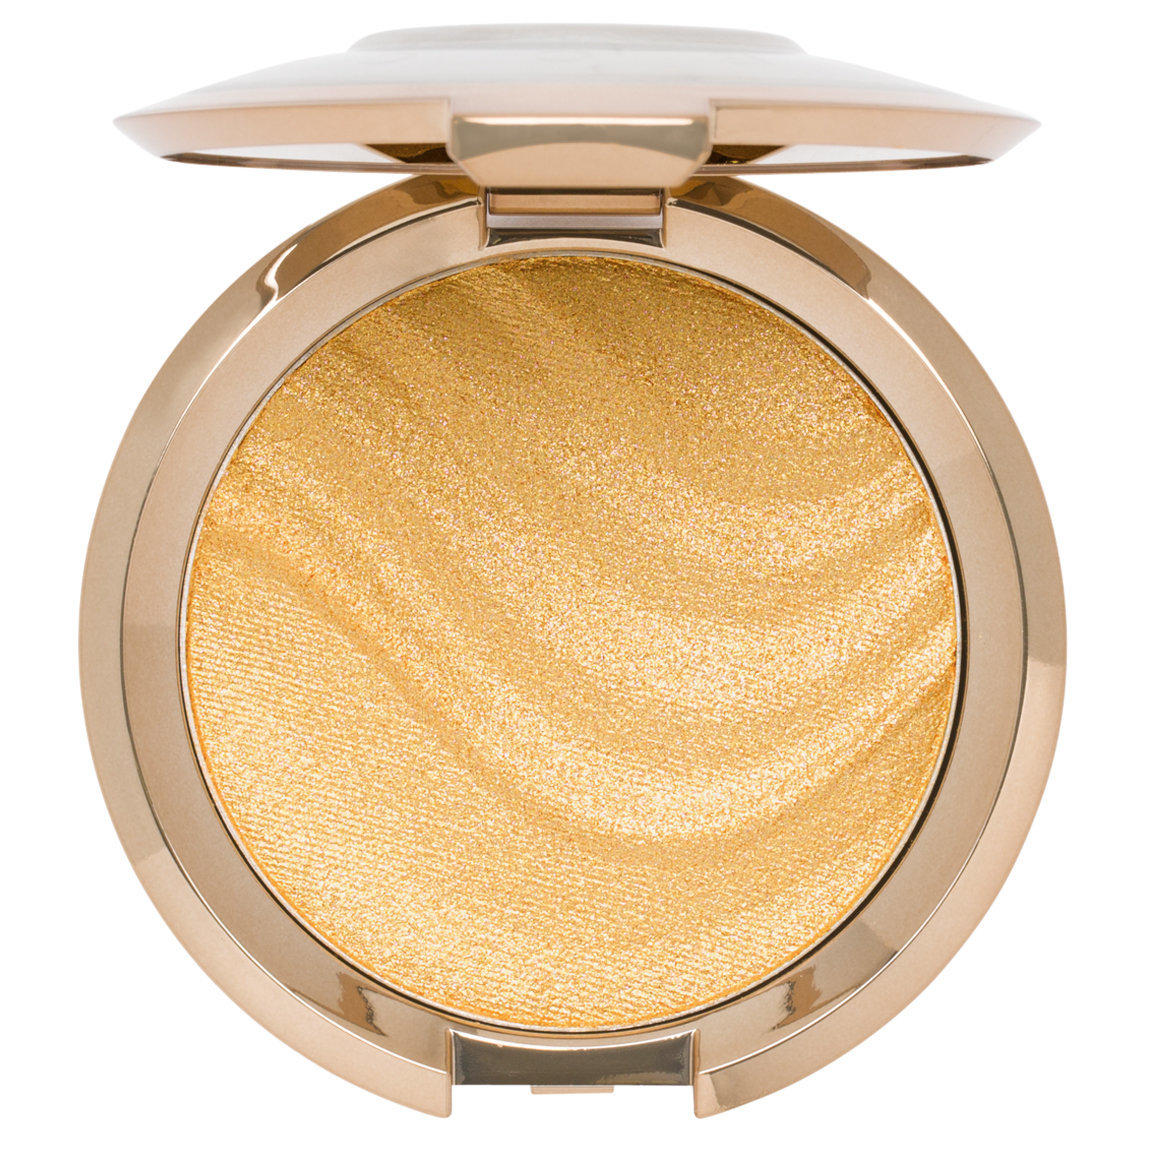 BECCA Shimmering Skin Perfector Pressed Gold Lava